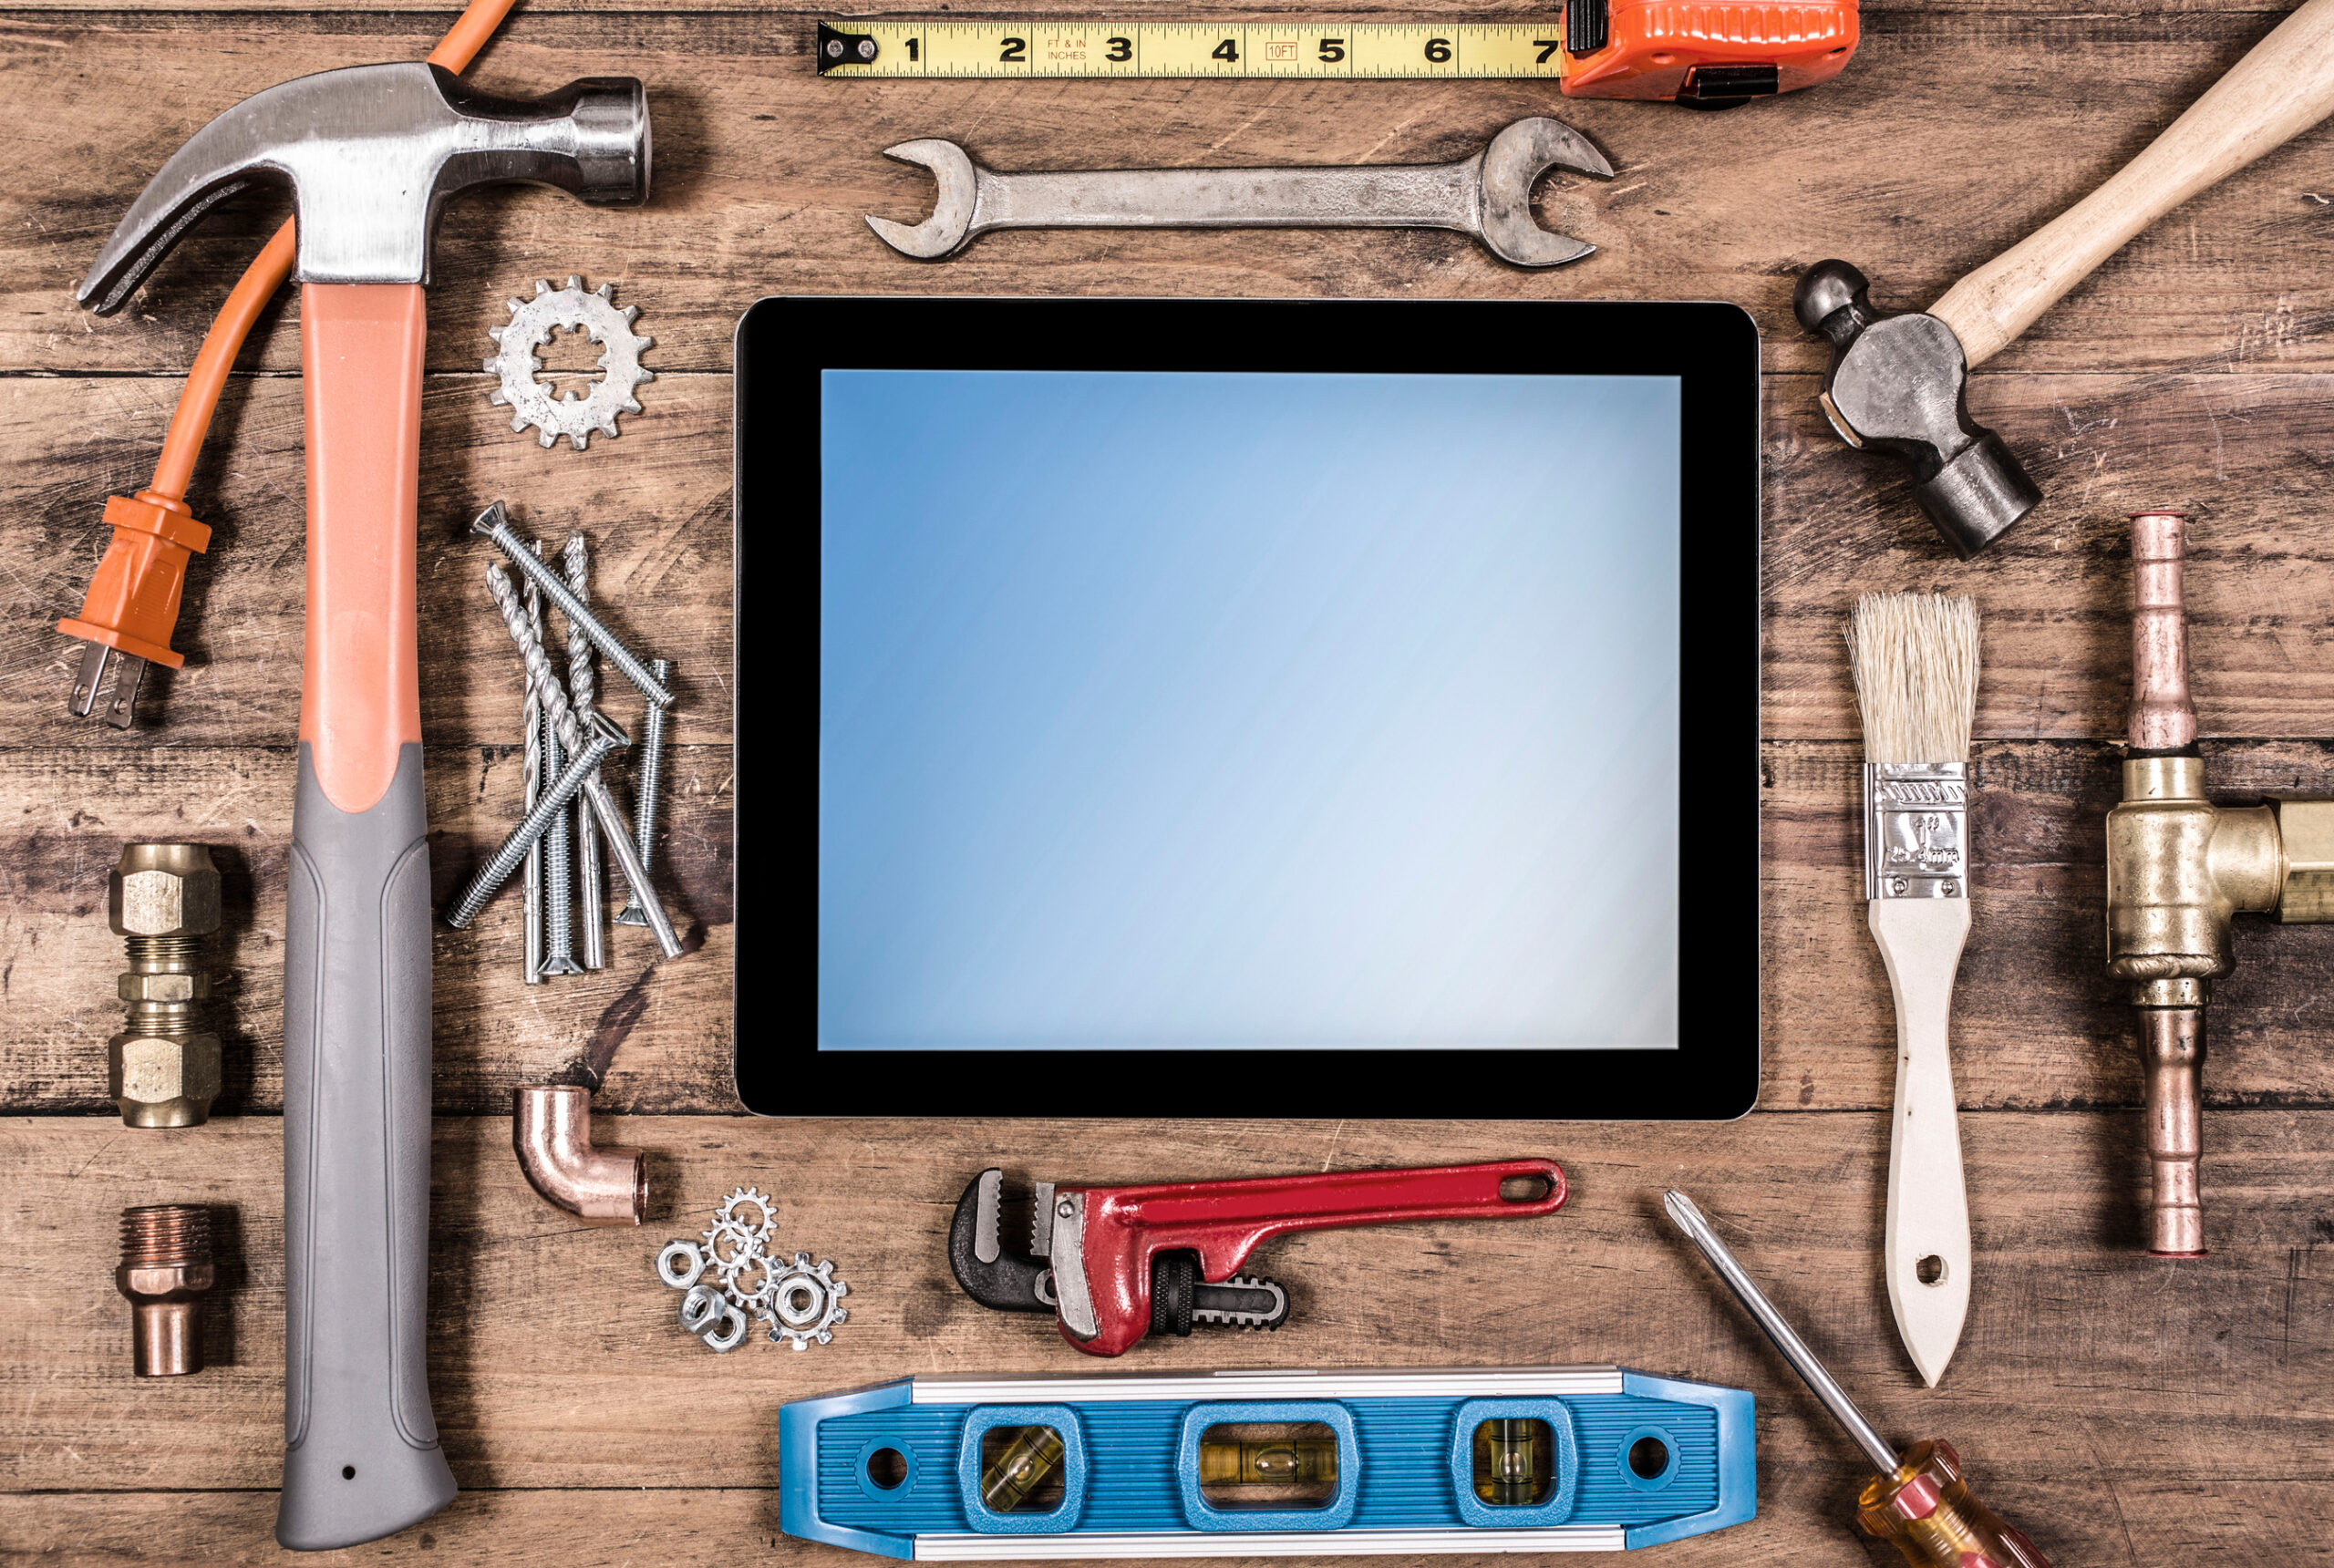 Various construction, DIY hand tools surround a digital tablet.  The screen is blue, blank on the tablet.  Tools include: hammer, nails, level, tape measure, paint brush, wrench, screwdriver.  All items lie on top of a rustic wooden table or desk.  Home improvement, construction themes.  Great background.